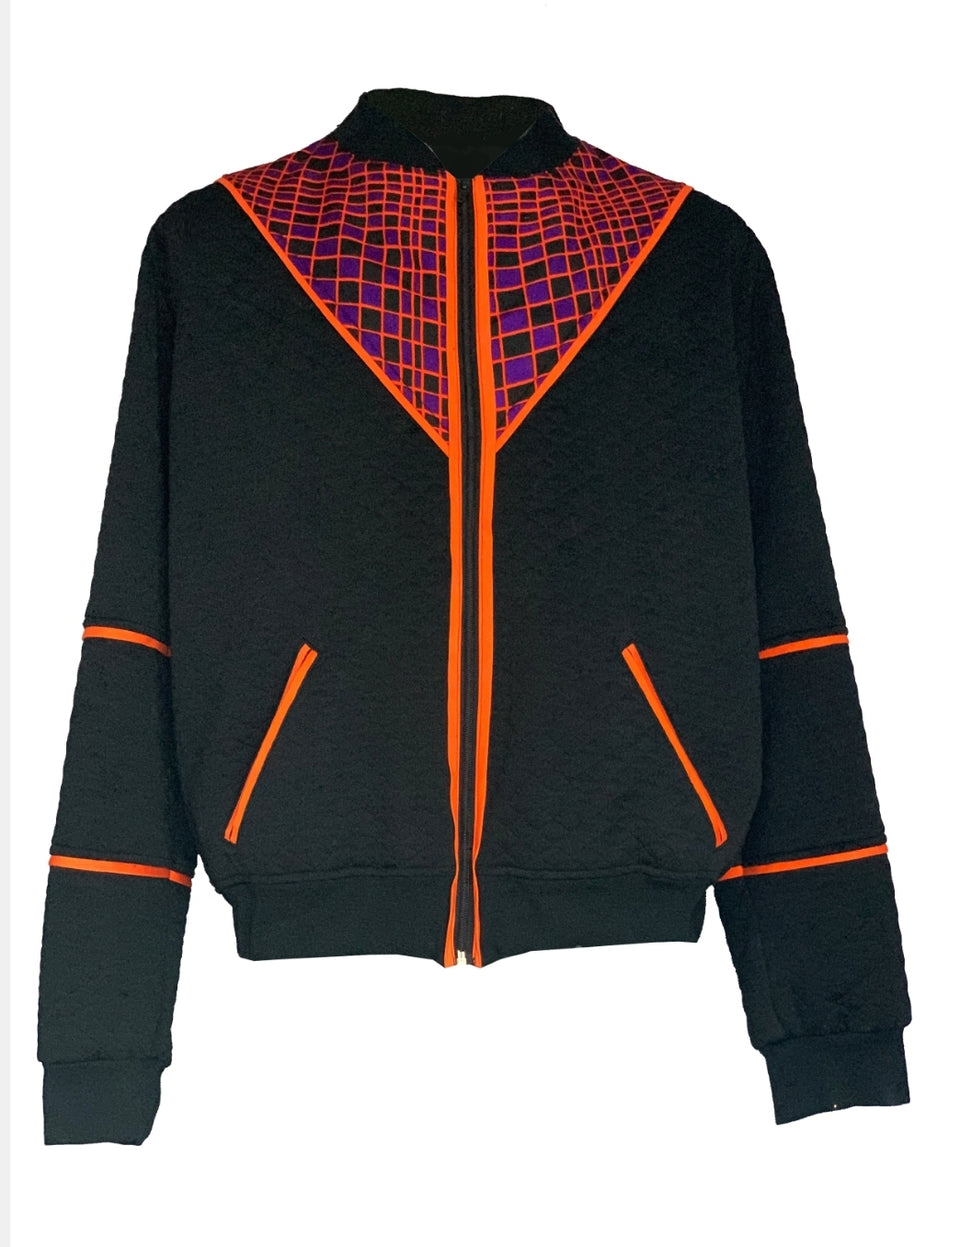 Black Bomber Jacket, quilted, orange, black and purple - Cotton print insert by Etia Design